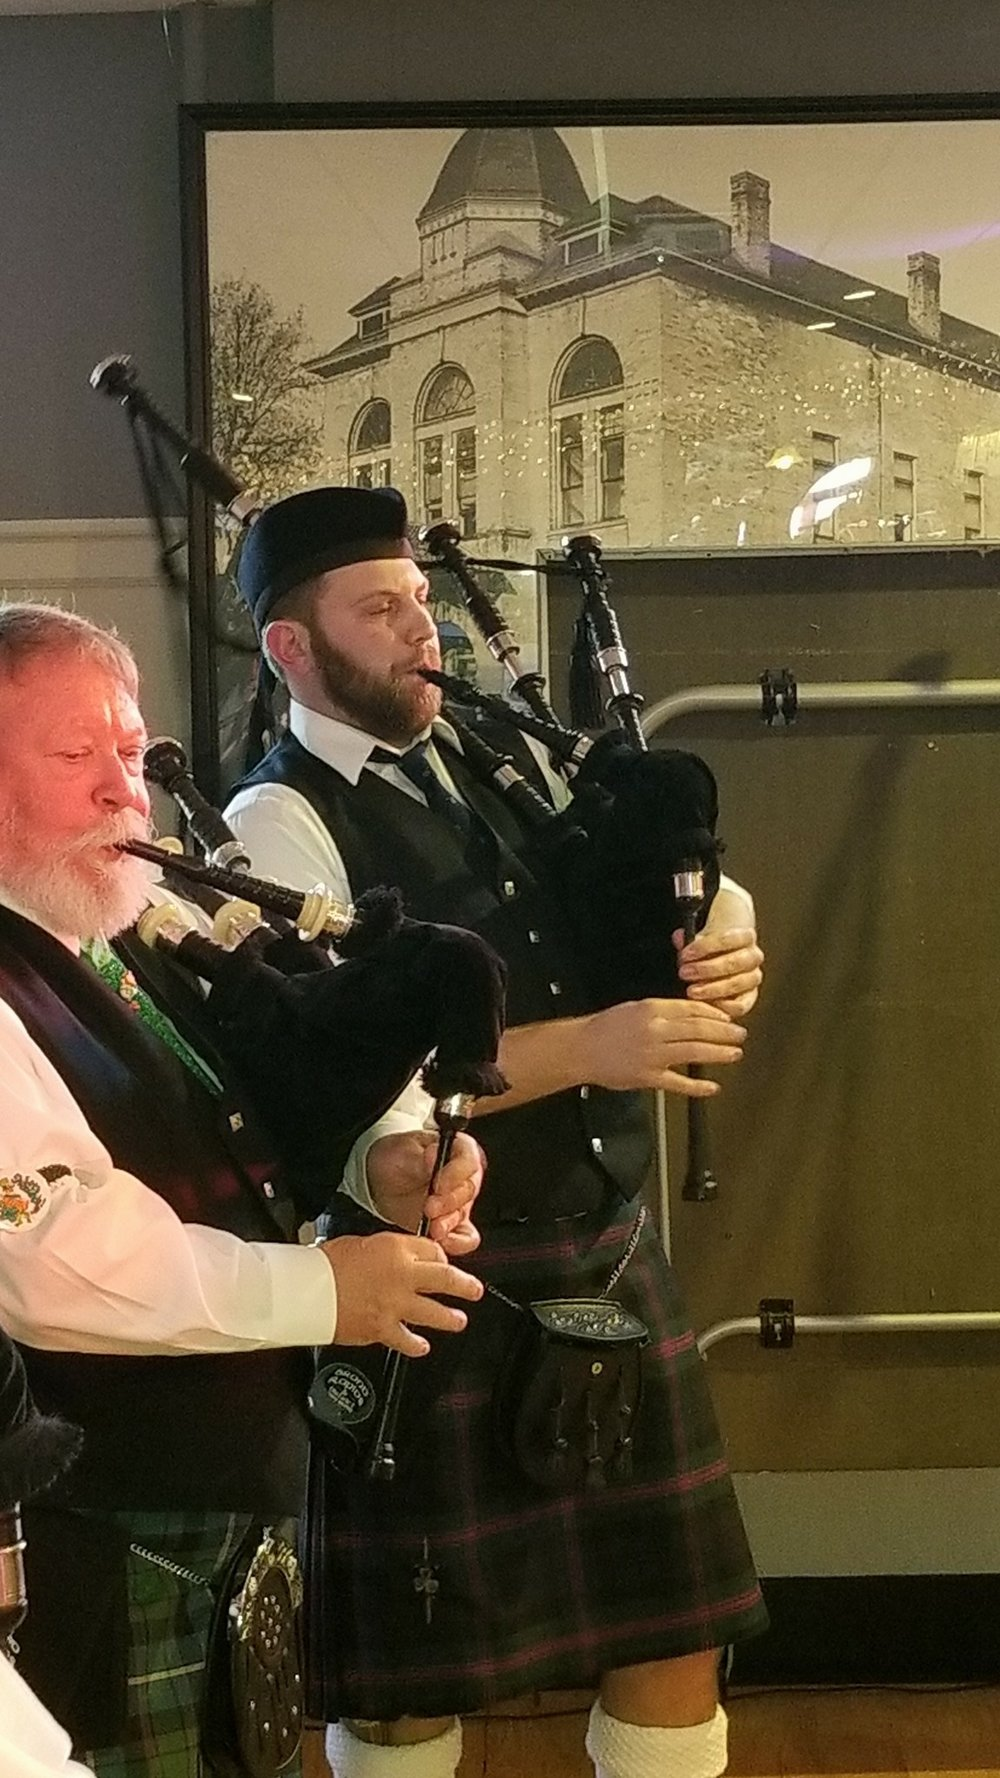 Pipe Major Fred Merrit and Novice Piper Killian Smith at the 5th street hall for the 2018 St. Patricks Day Pub Crawl.